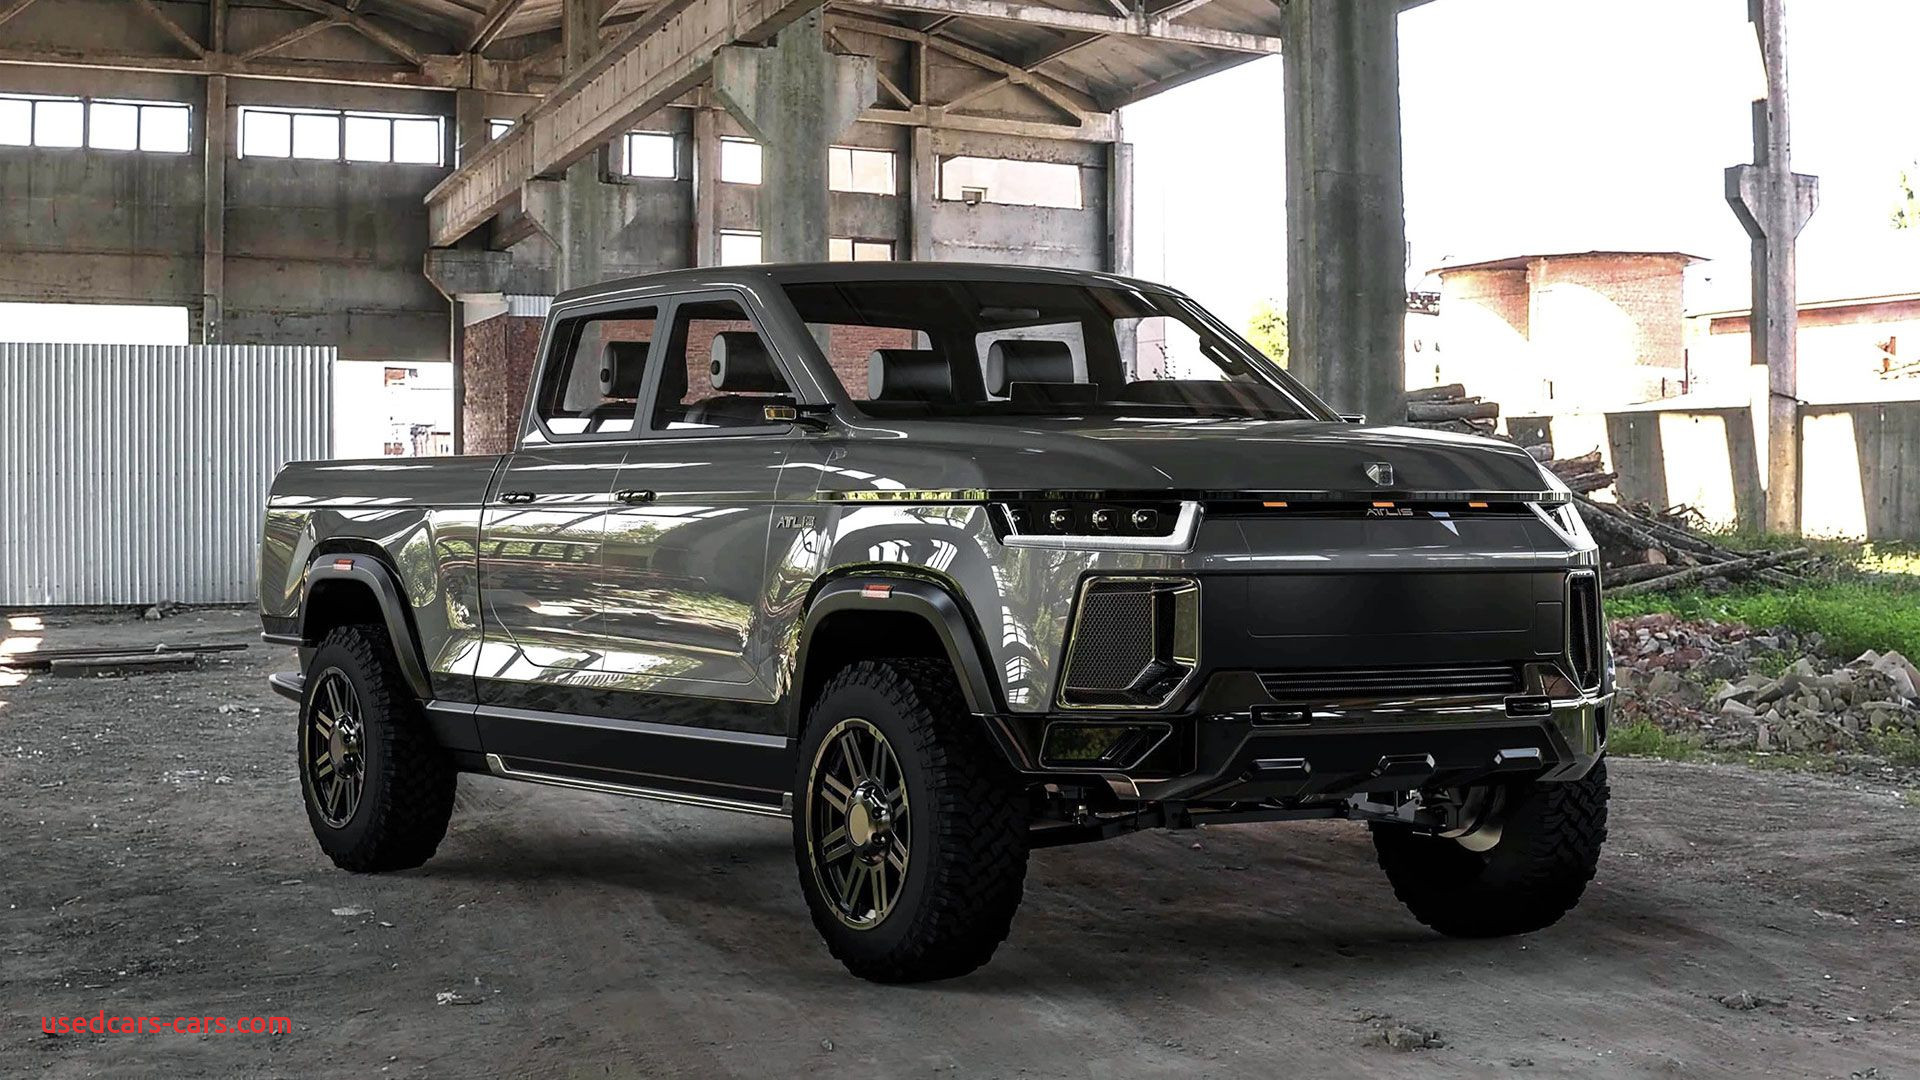 Tesla Pickup Truck Release Unique Rivian R1t is A Real Electric Pickup Truck but atlis Xt is